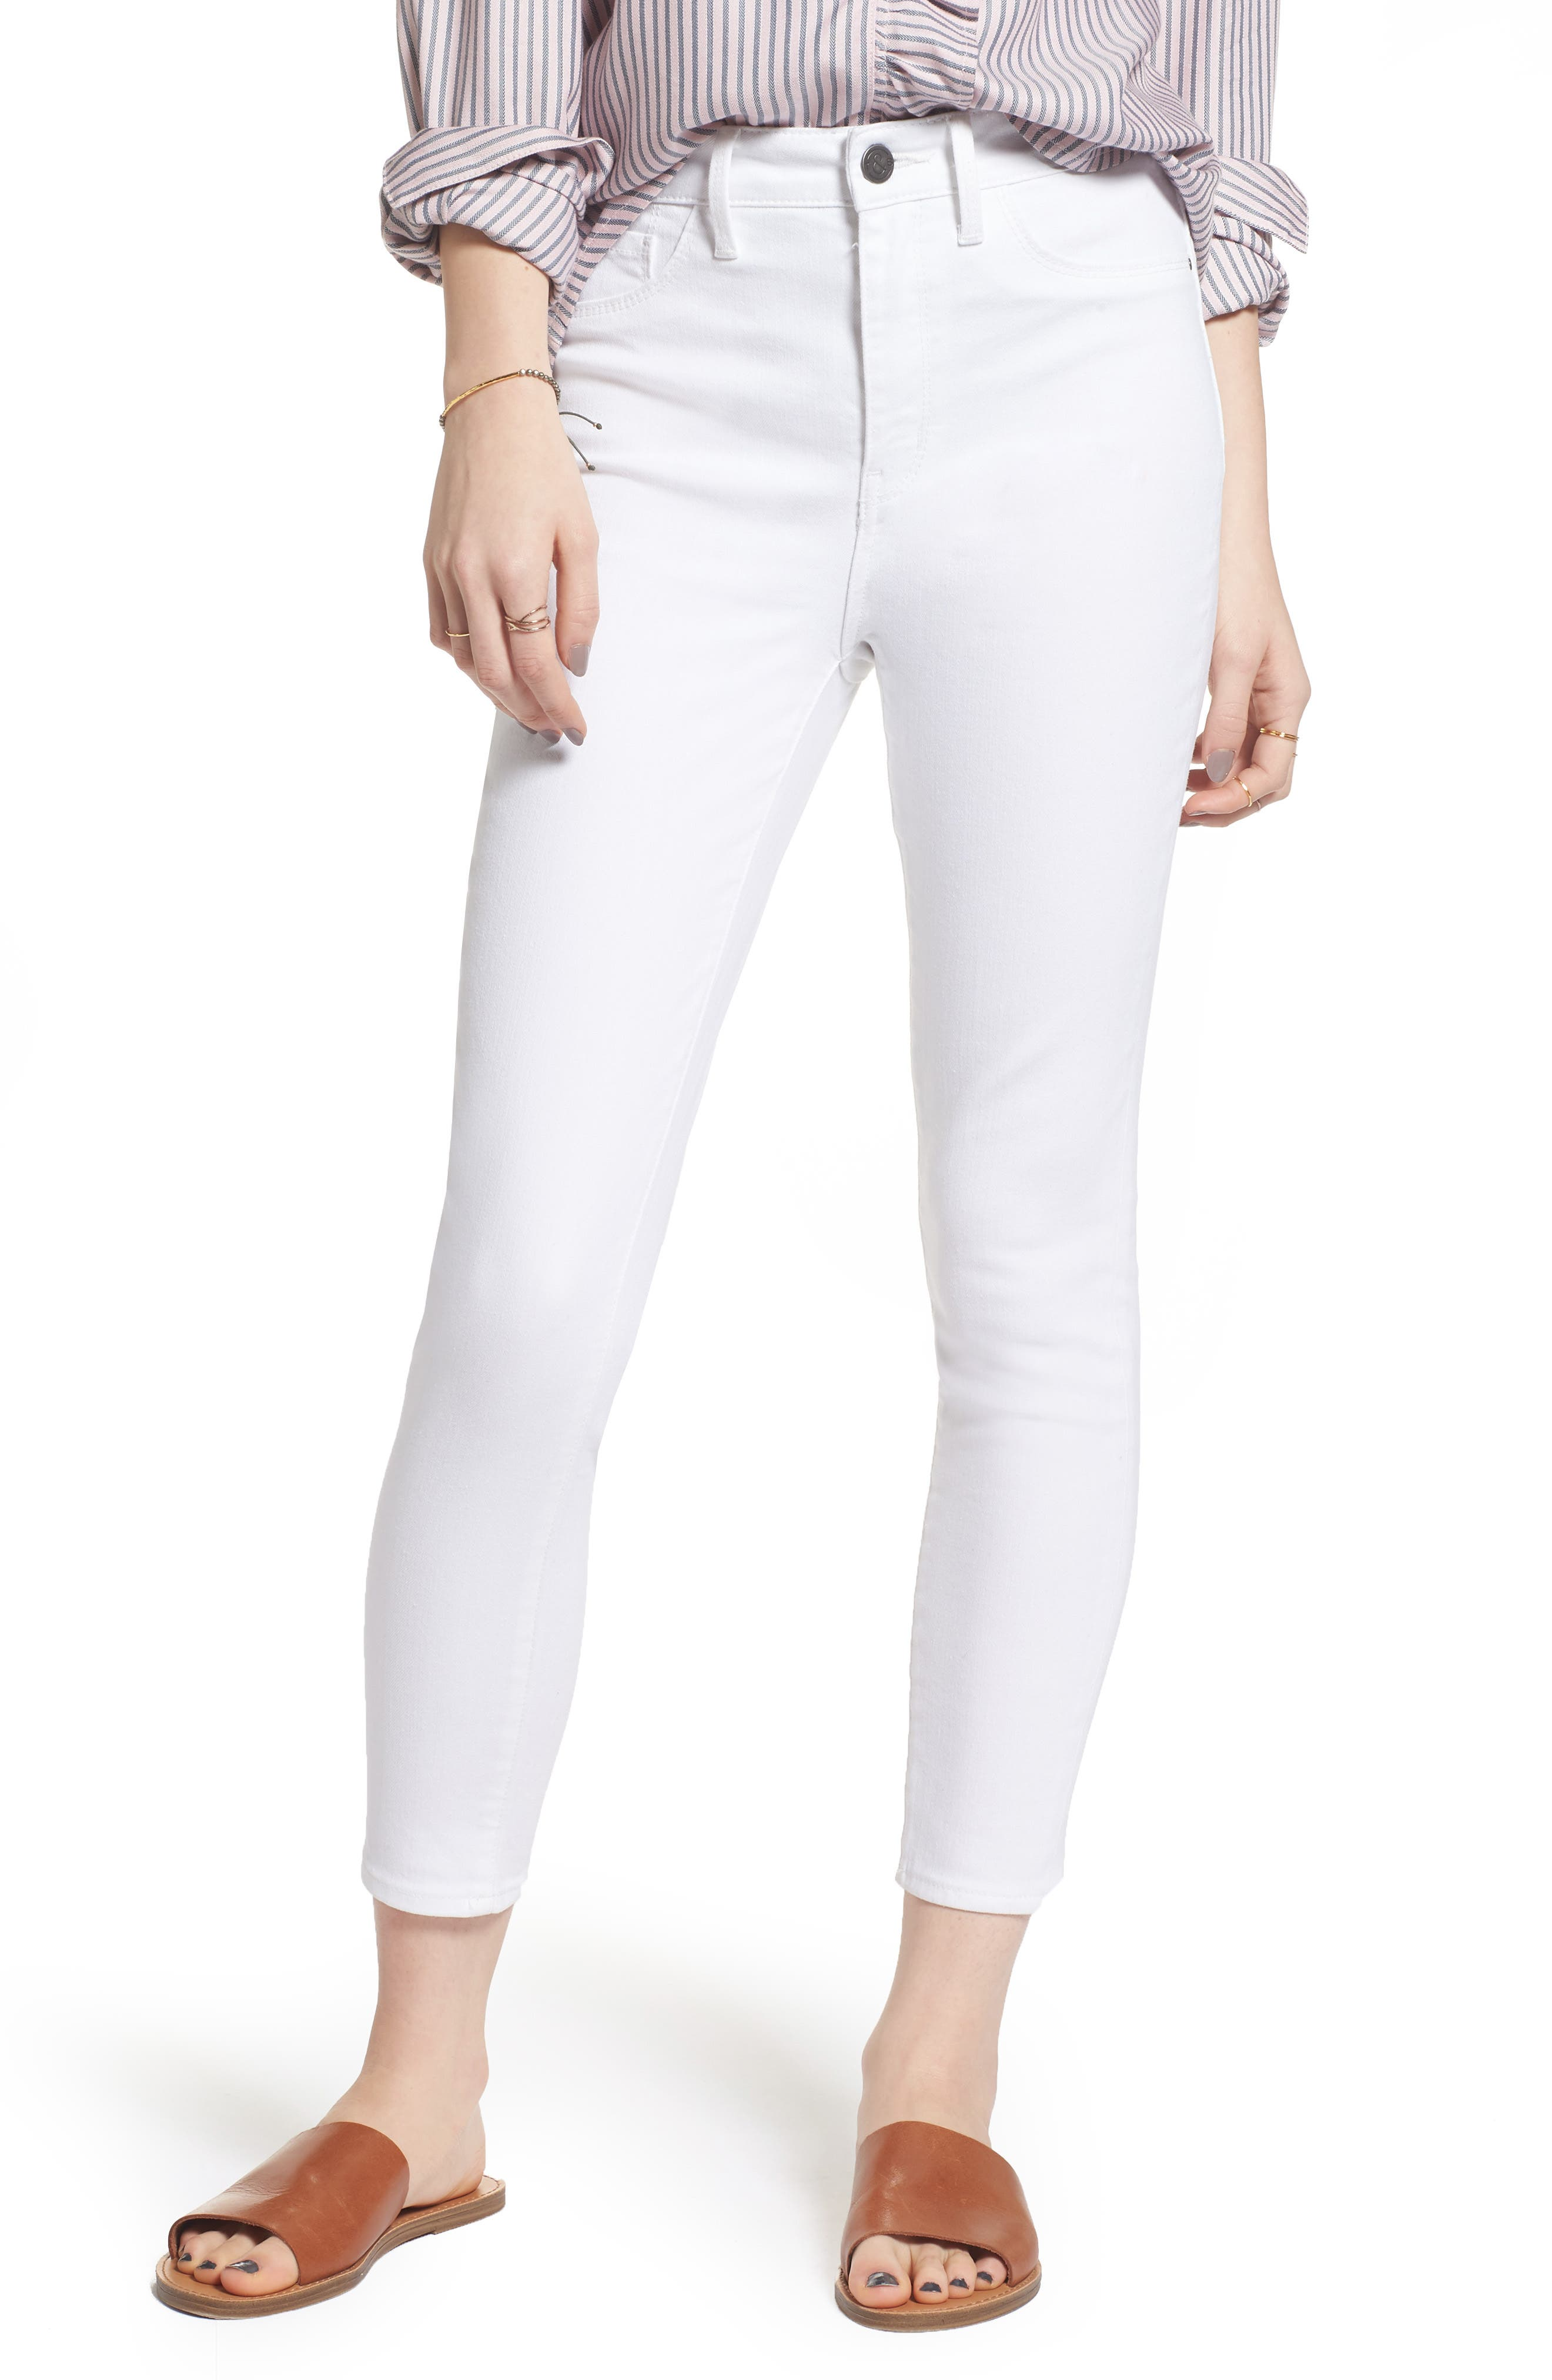 Charity High Waist Crop Skinny Jeans,                             Main thumbnail 1, color,                             White